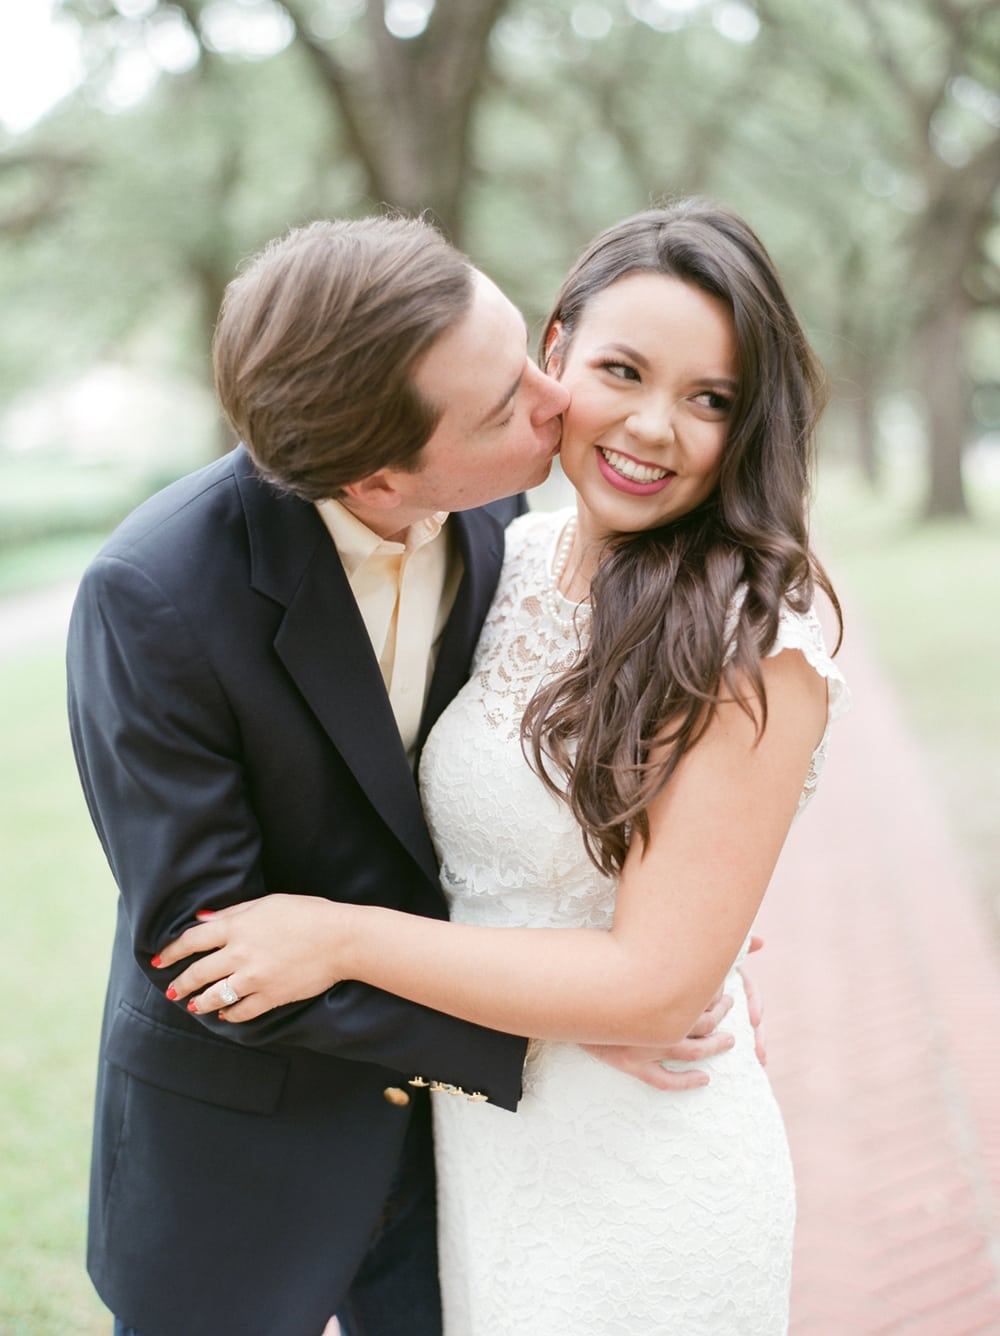 What makes the perfect engagement photo? A loving finance and the perfect dress thanks to David's Bridal!